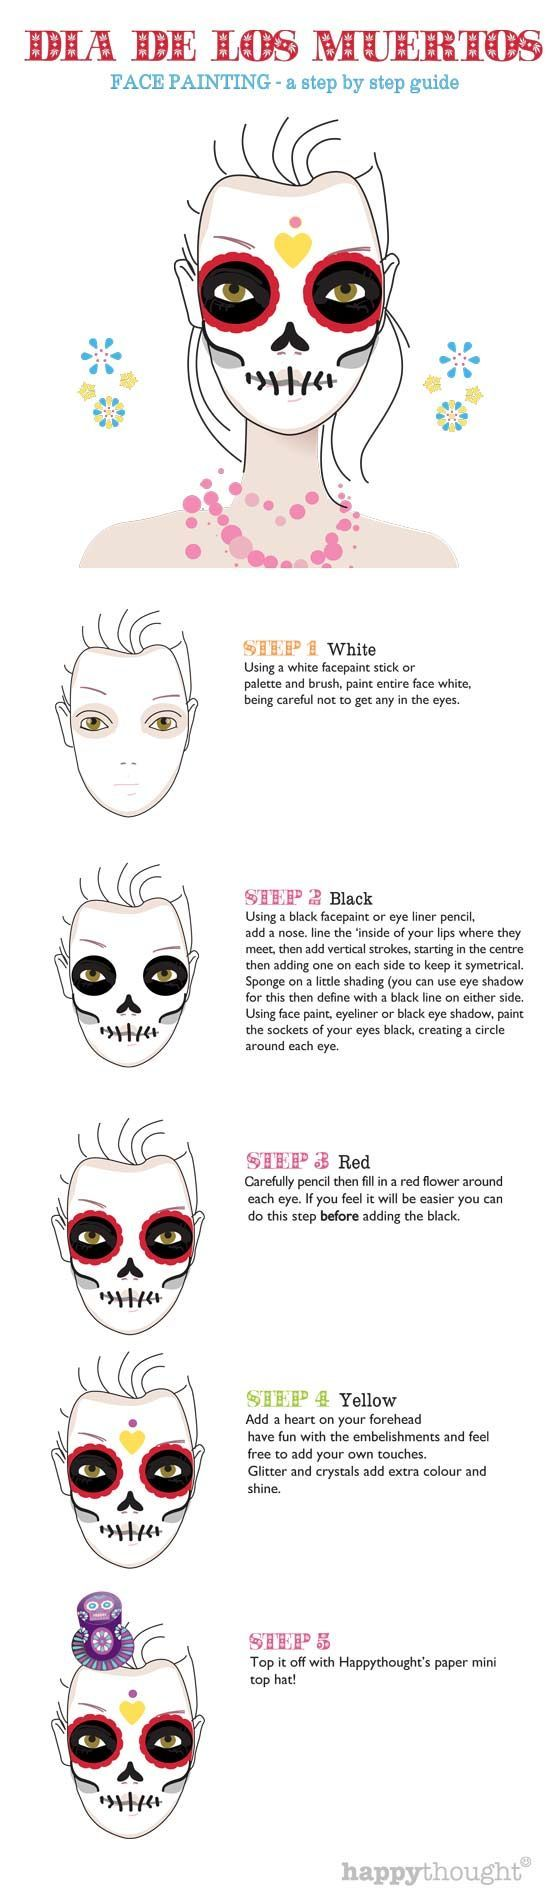 Skull face paint tutorial steps: Calavera sugar skull idea!